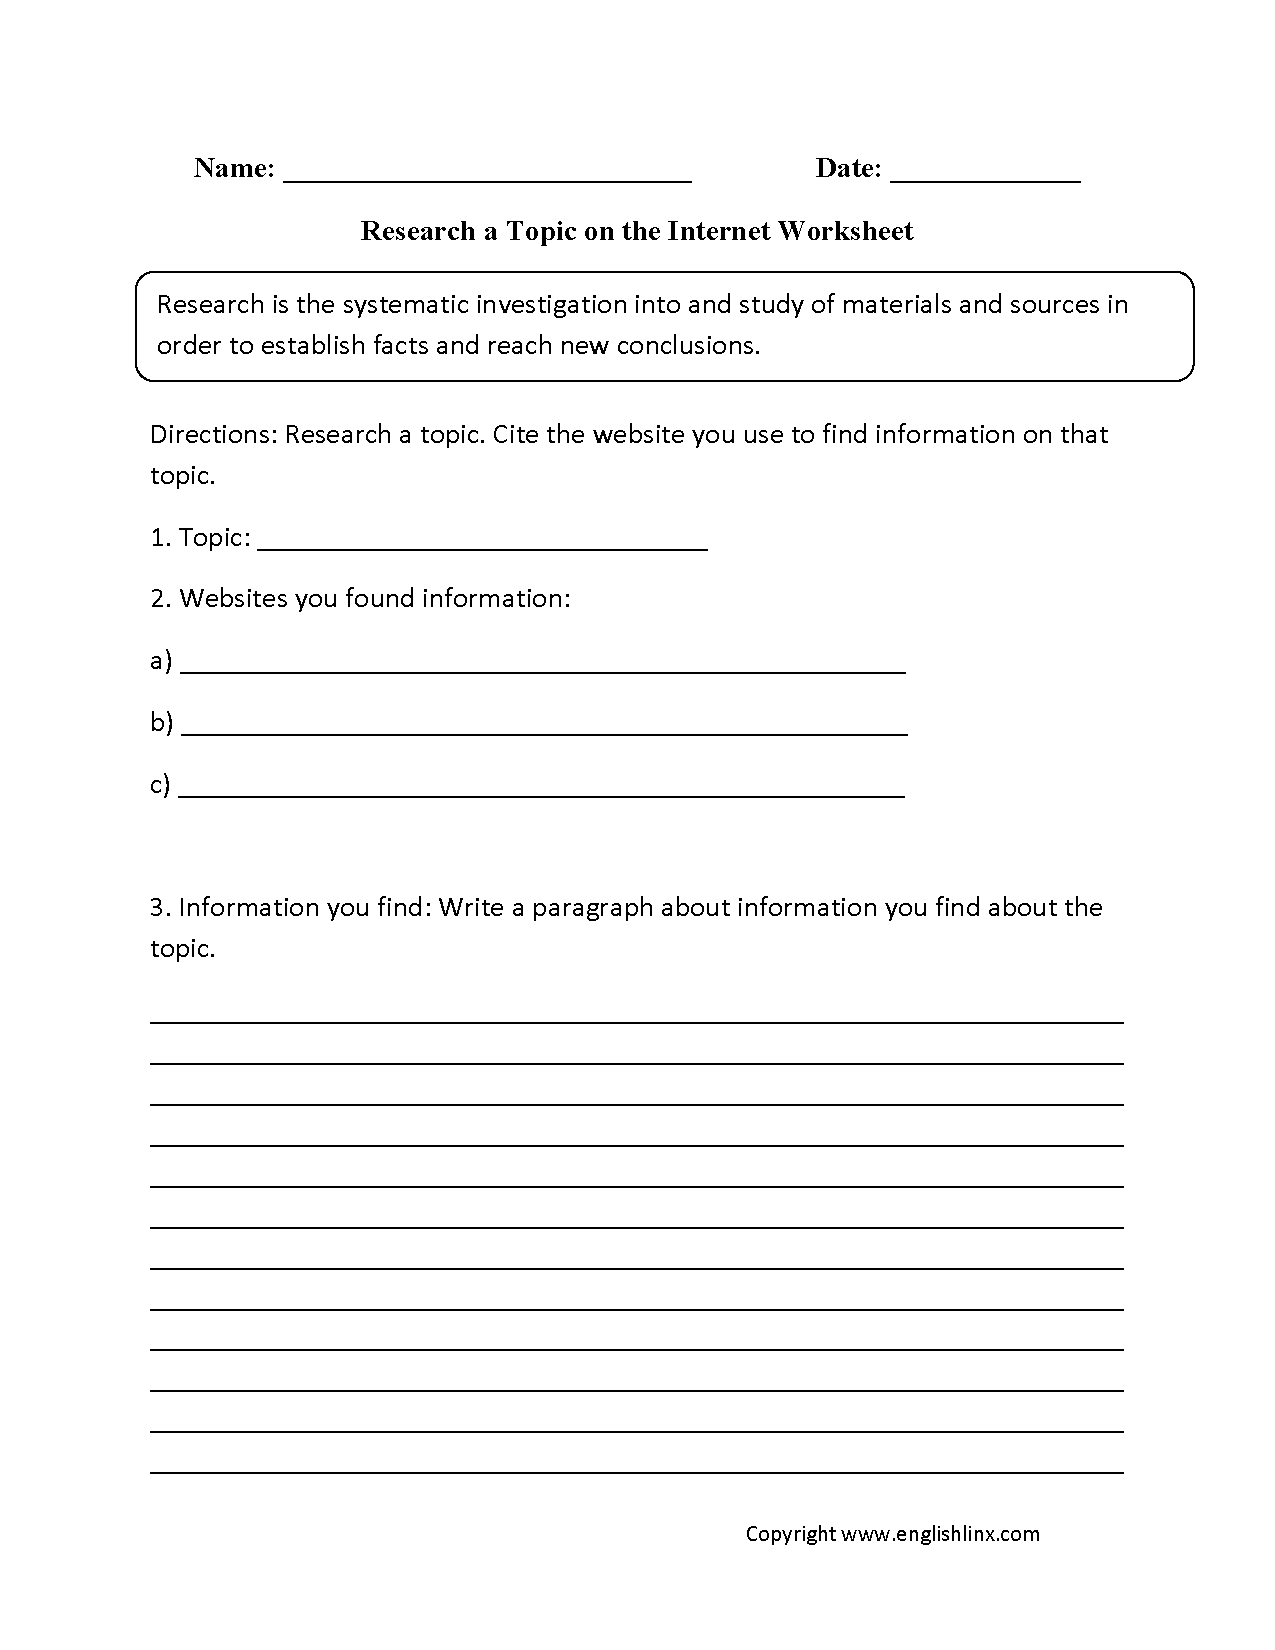 Aldiablosus  Scenic Englishlinxcom  Research Worksheets With Entrancing On The Internet Worksheet With Delightful Giving Direction Worksheet Also Triangles Worksheet Ks In Addition Elements Of Literature Worksheet And Homework For Kids Worksheets As Well As Free Place Value Worksheets Th Grade Additionally Math Linear Equations Worksheets From Englishlinxcom With Aldiablosus  Entrancing Englishlinxcom  Research Worksheets With Delightful On The Internet Worksheet And Scenic Giving Direction Worksheet Also Triangles Worksheet Ks In Addition Elements Of Literature Worksheet From Englishlinxcom